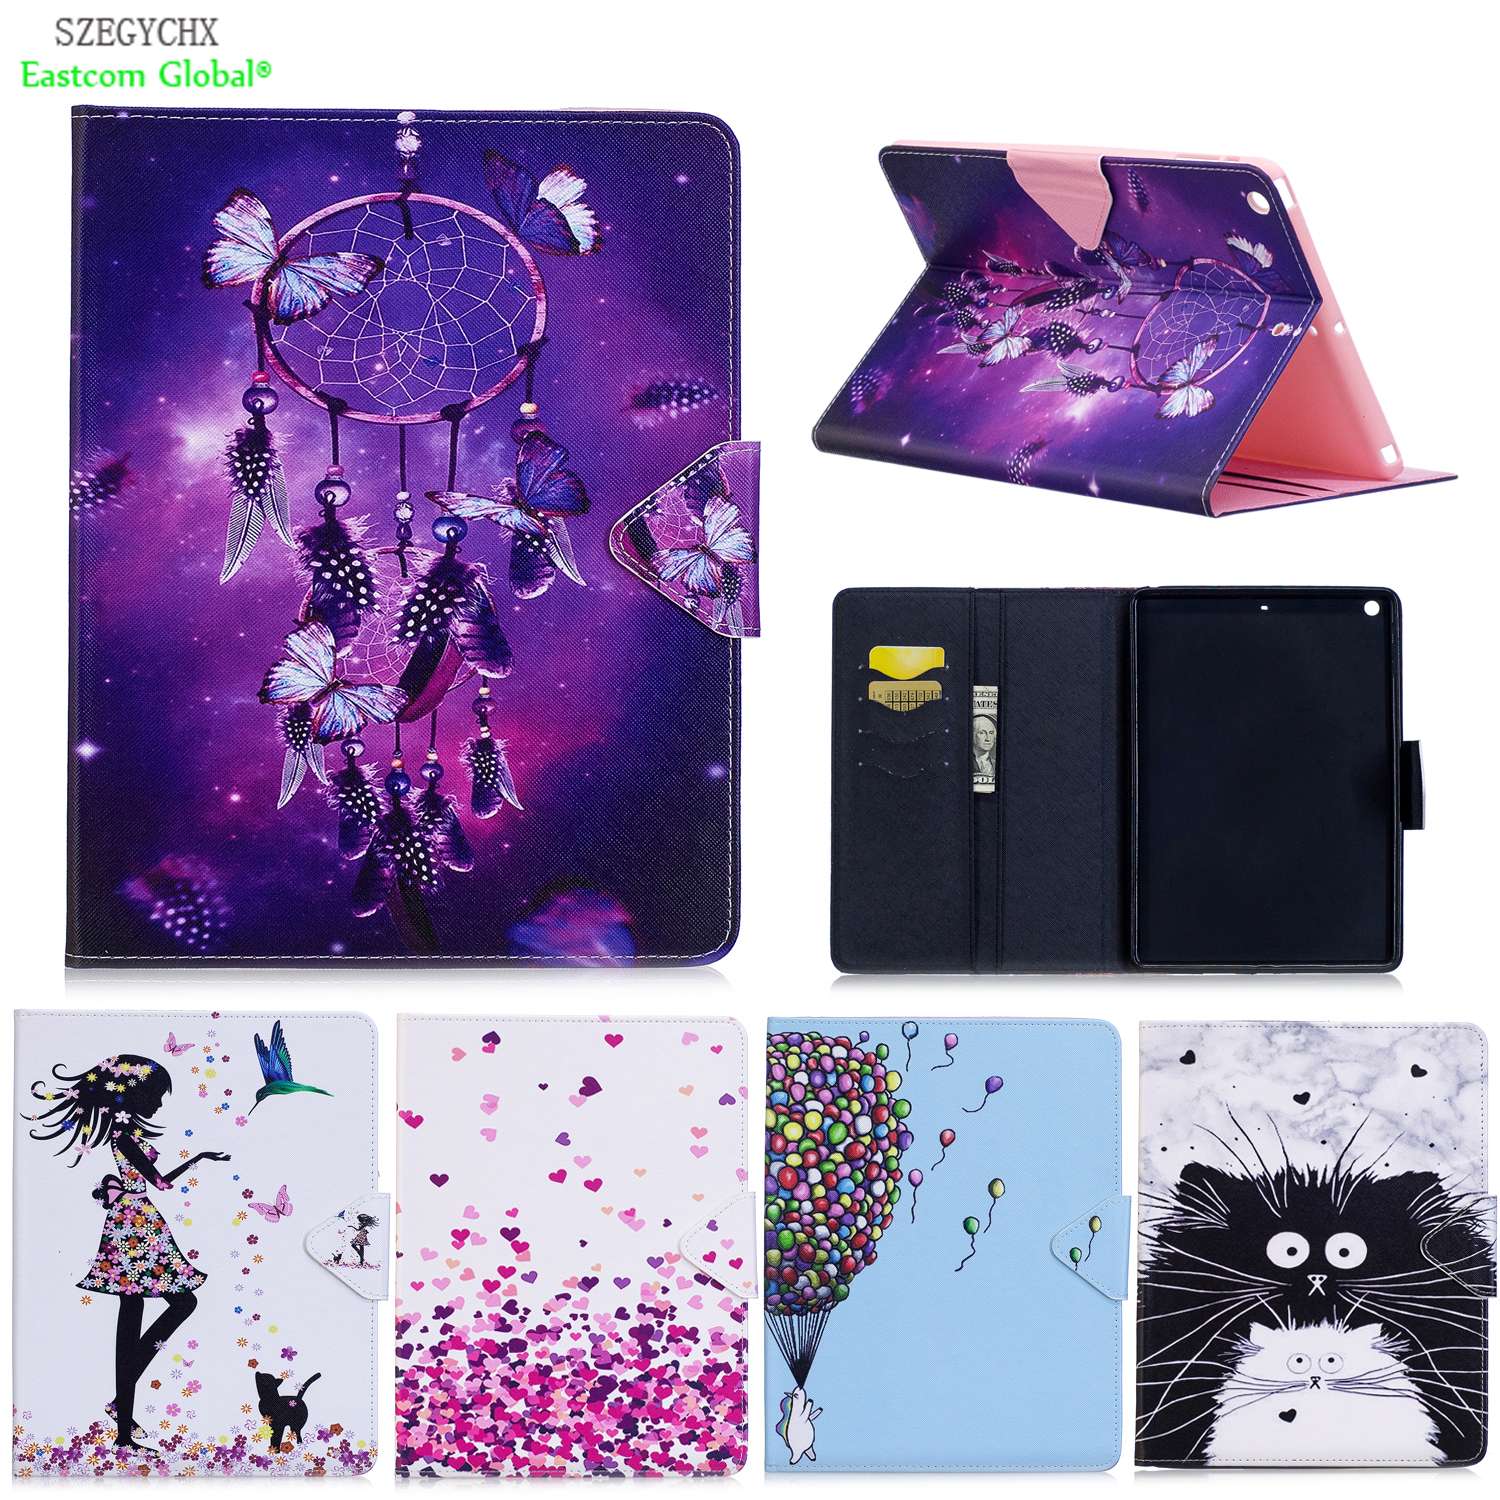 Cover For iPad Air 1,PU Leather Smart cover Stand case For ipad 5 Tablet Case For iPad 9.7 inch Protective cover tablet case for ipad 4 for ipad 3 for ipad 2 for ipad 9 7 inch pu leather smart cover stand case shell